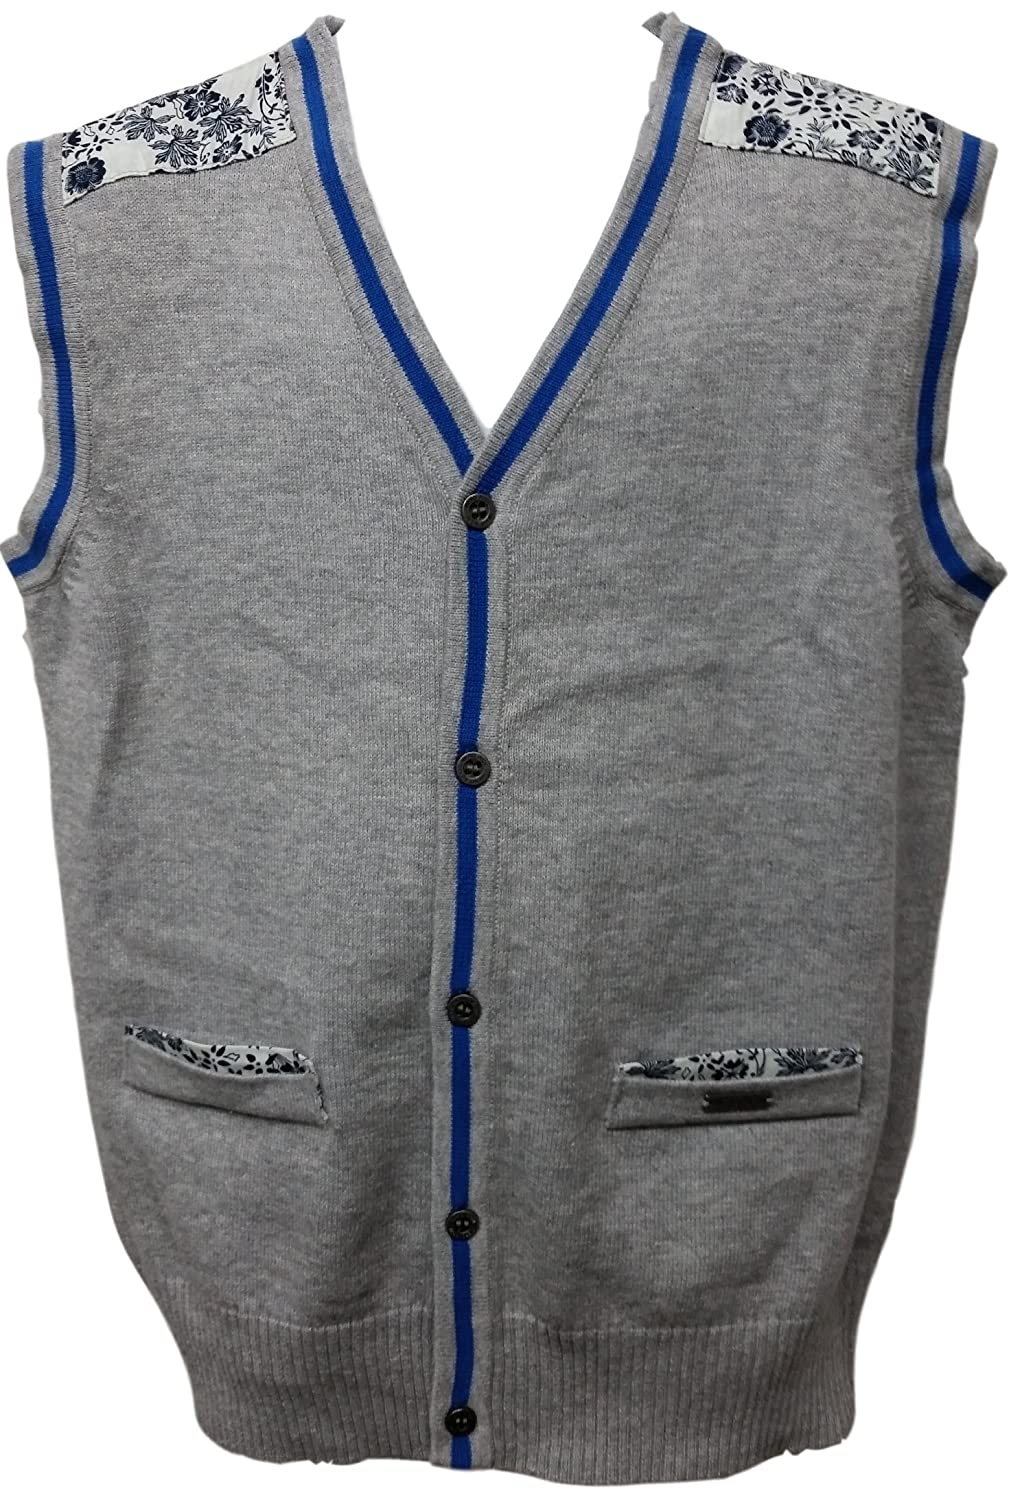 Viero Richi Boy's Sweater Vest 100% Cotton 2293G